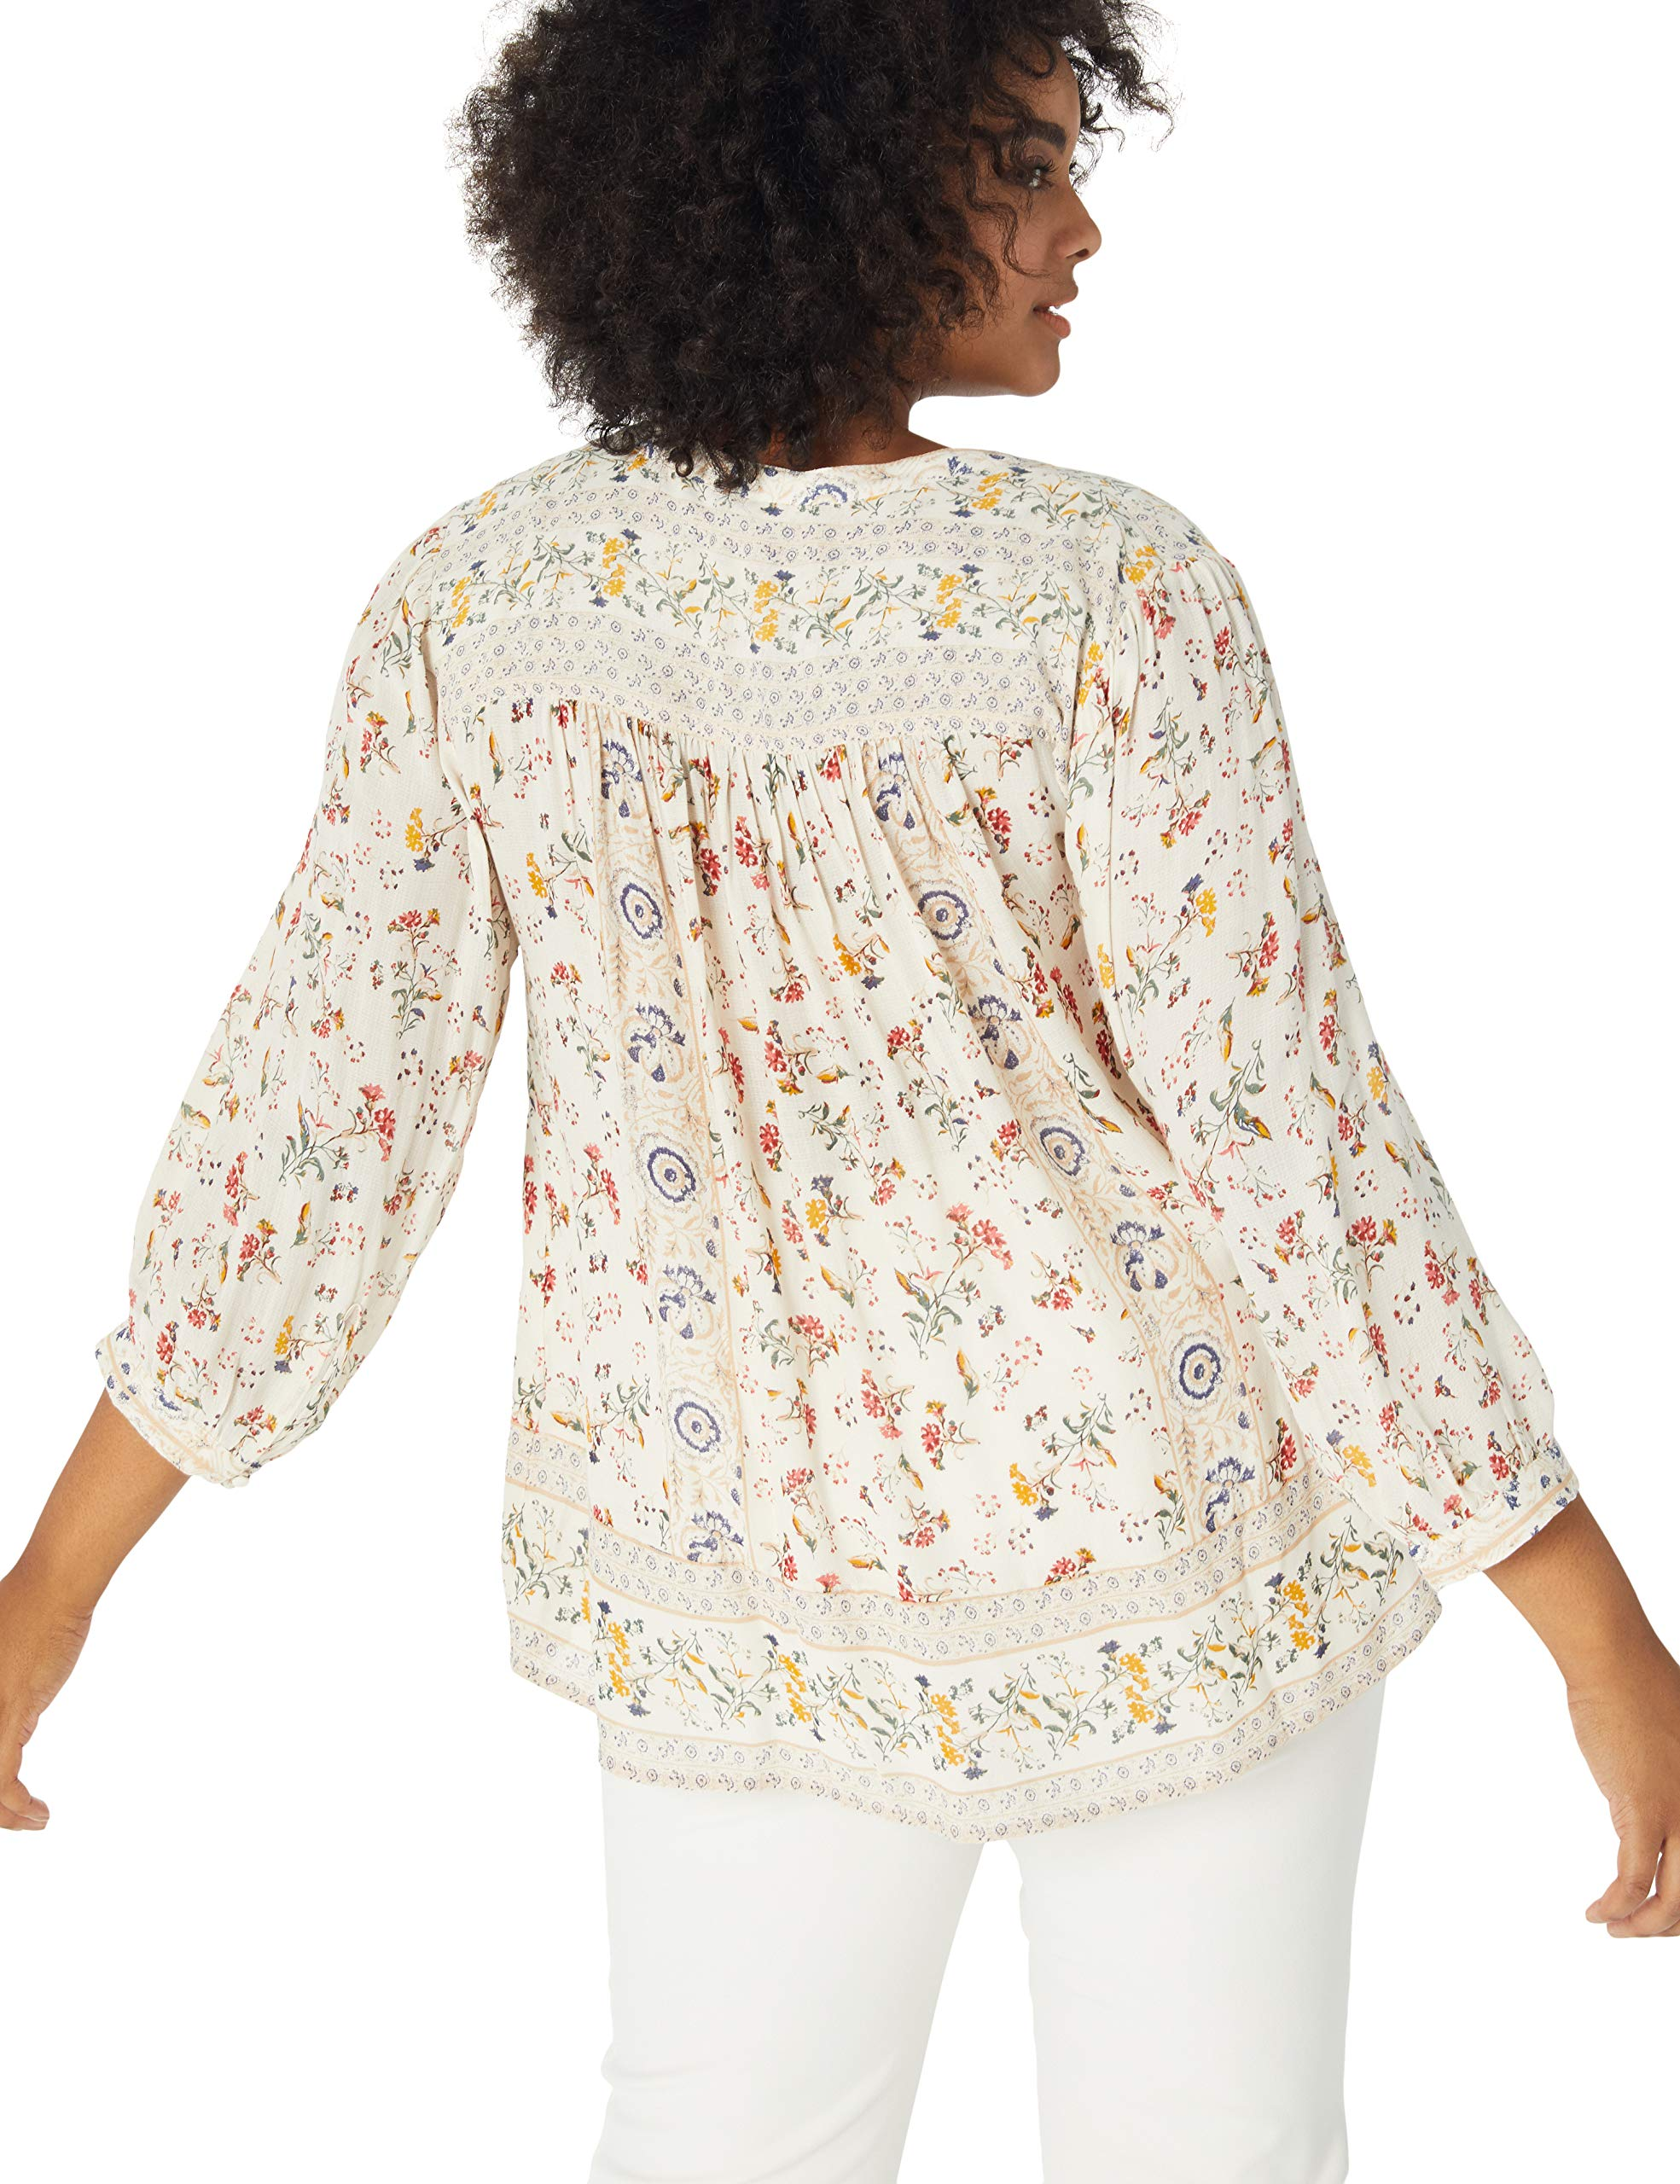 Lucky Brand Women's Plus Size Printed Peasant Top, Natural Multi, 2X by Lucky Brand (Image #2)